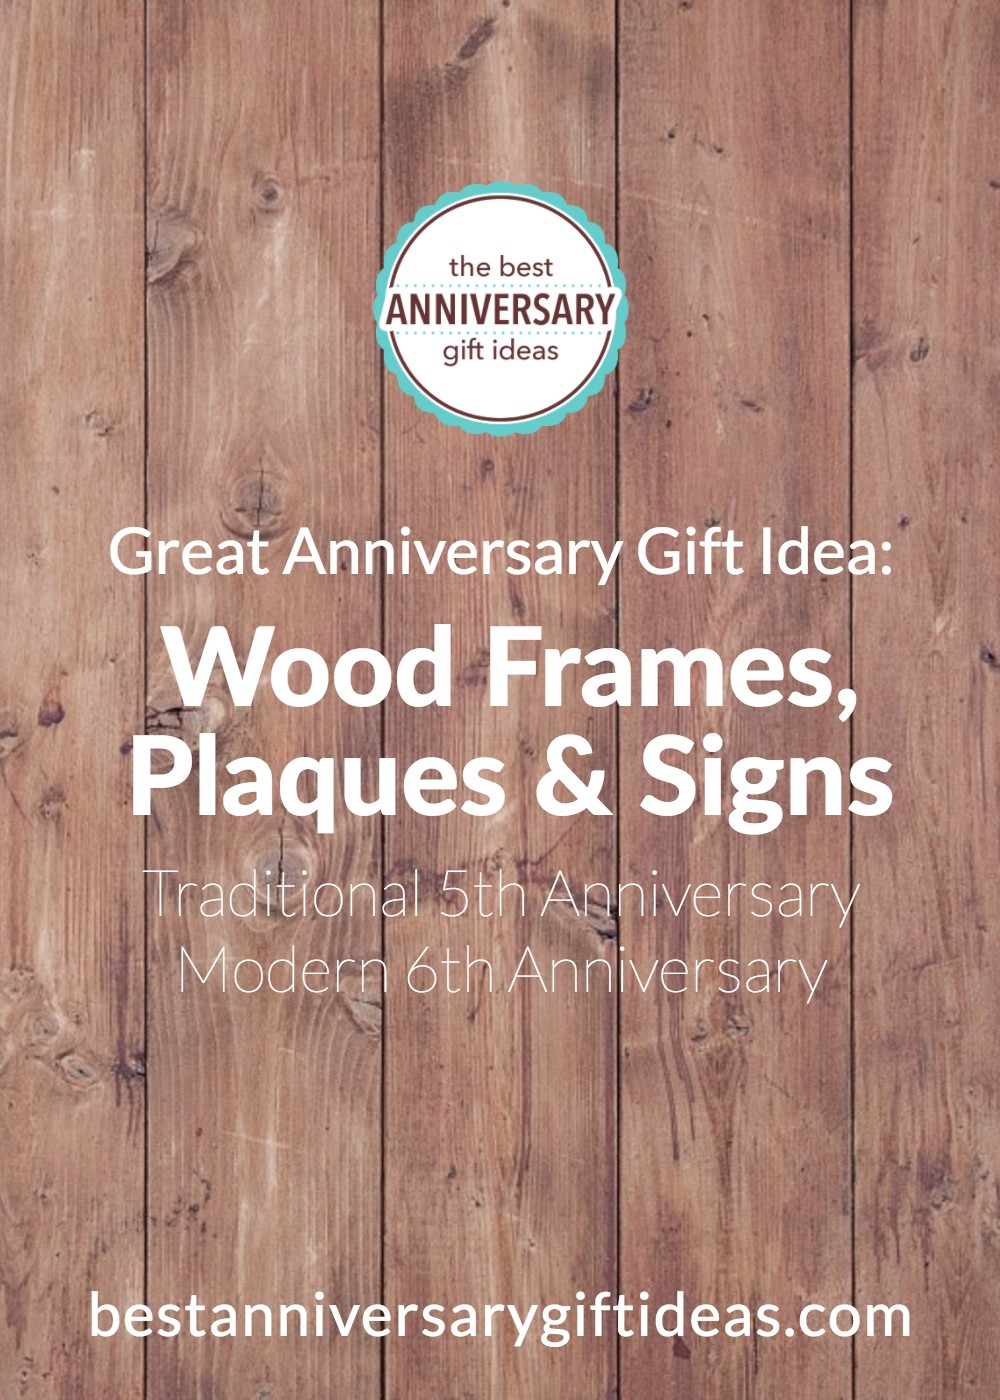 Wood Frames, Plaques and Signs Anniversary Gifts